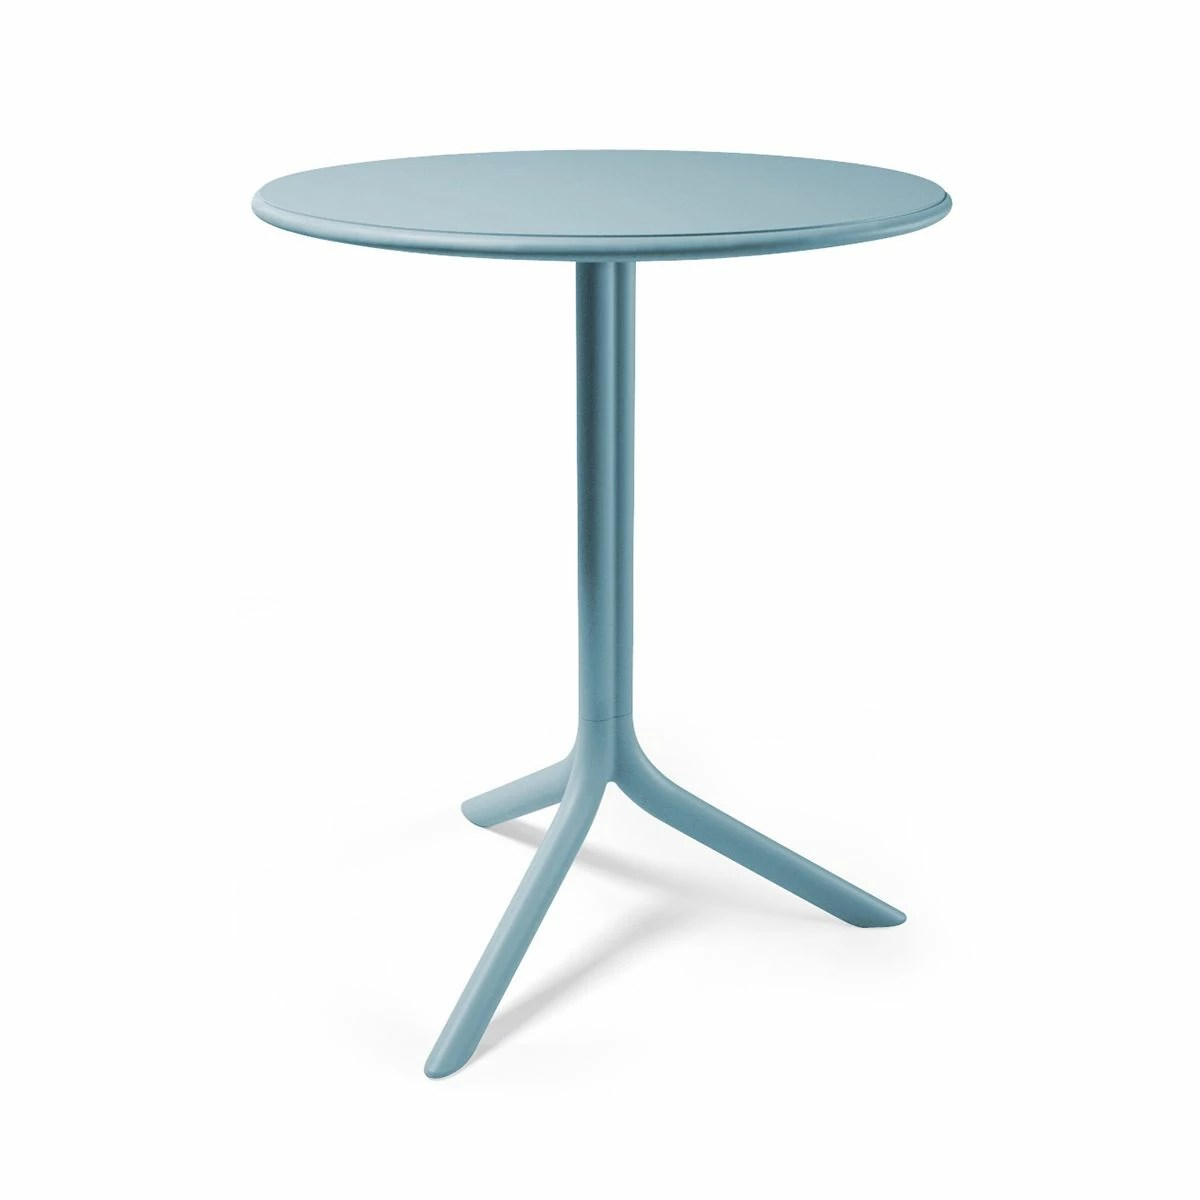 Table Jardin Modulable Table Ronde Jardin And Terrasse Spritz Nardi Zendart Design